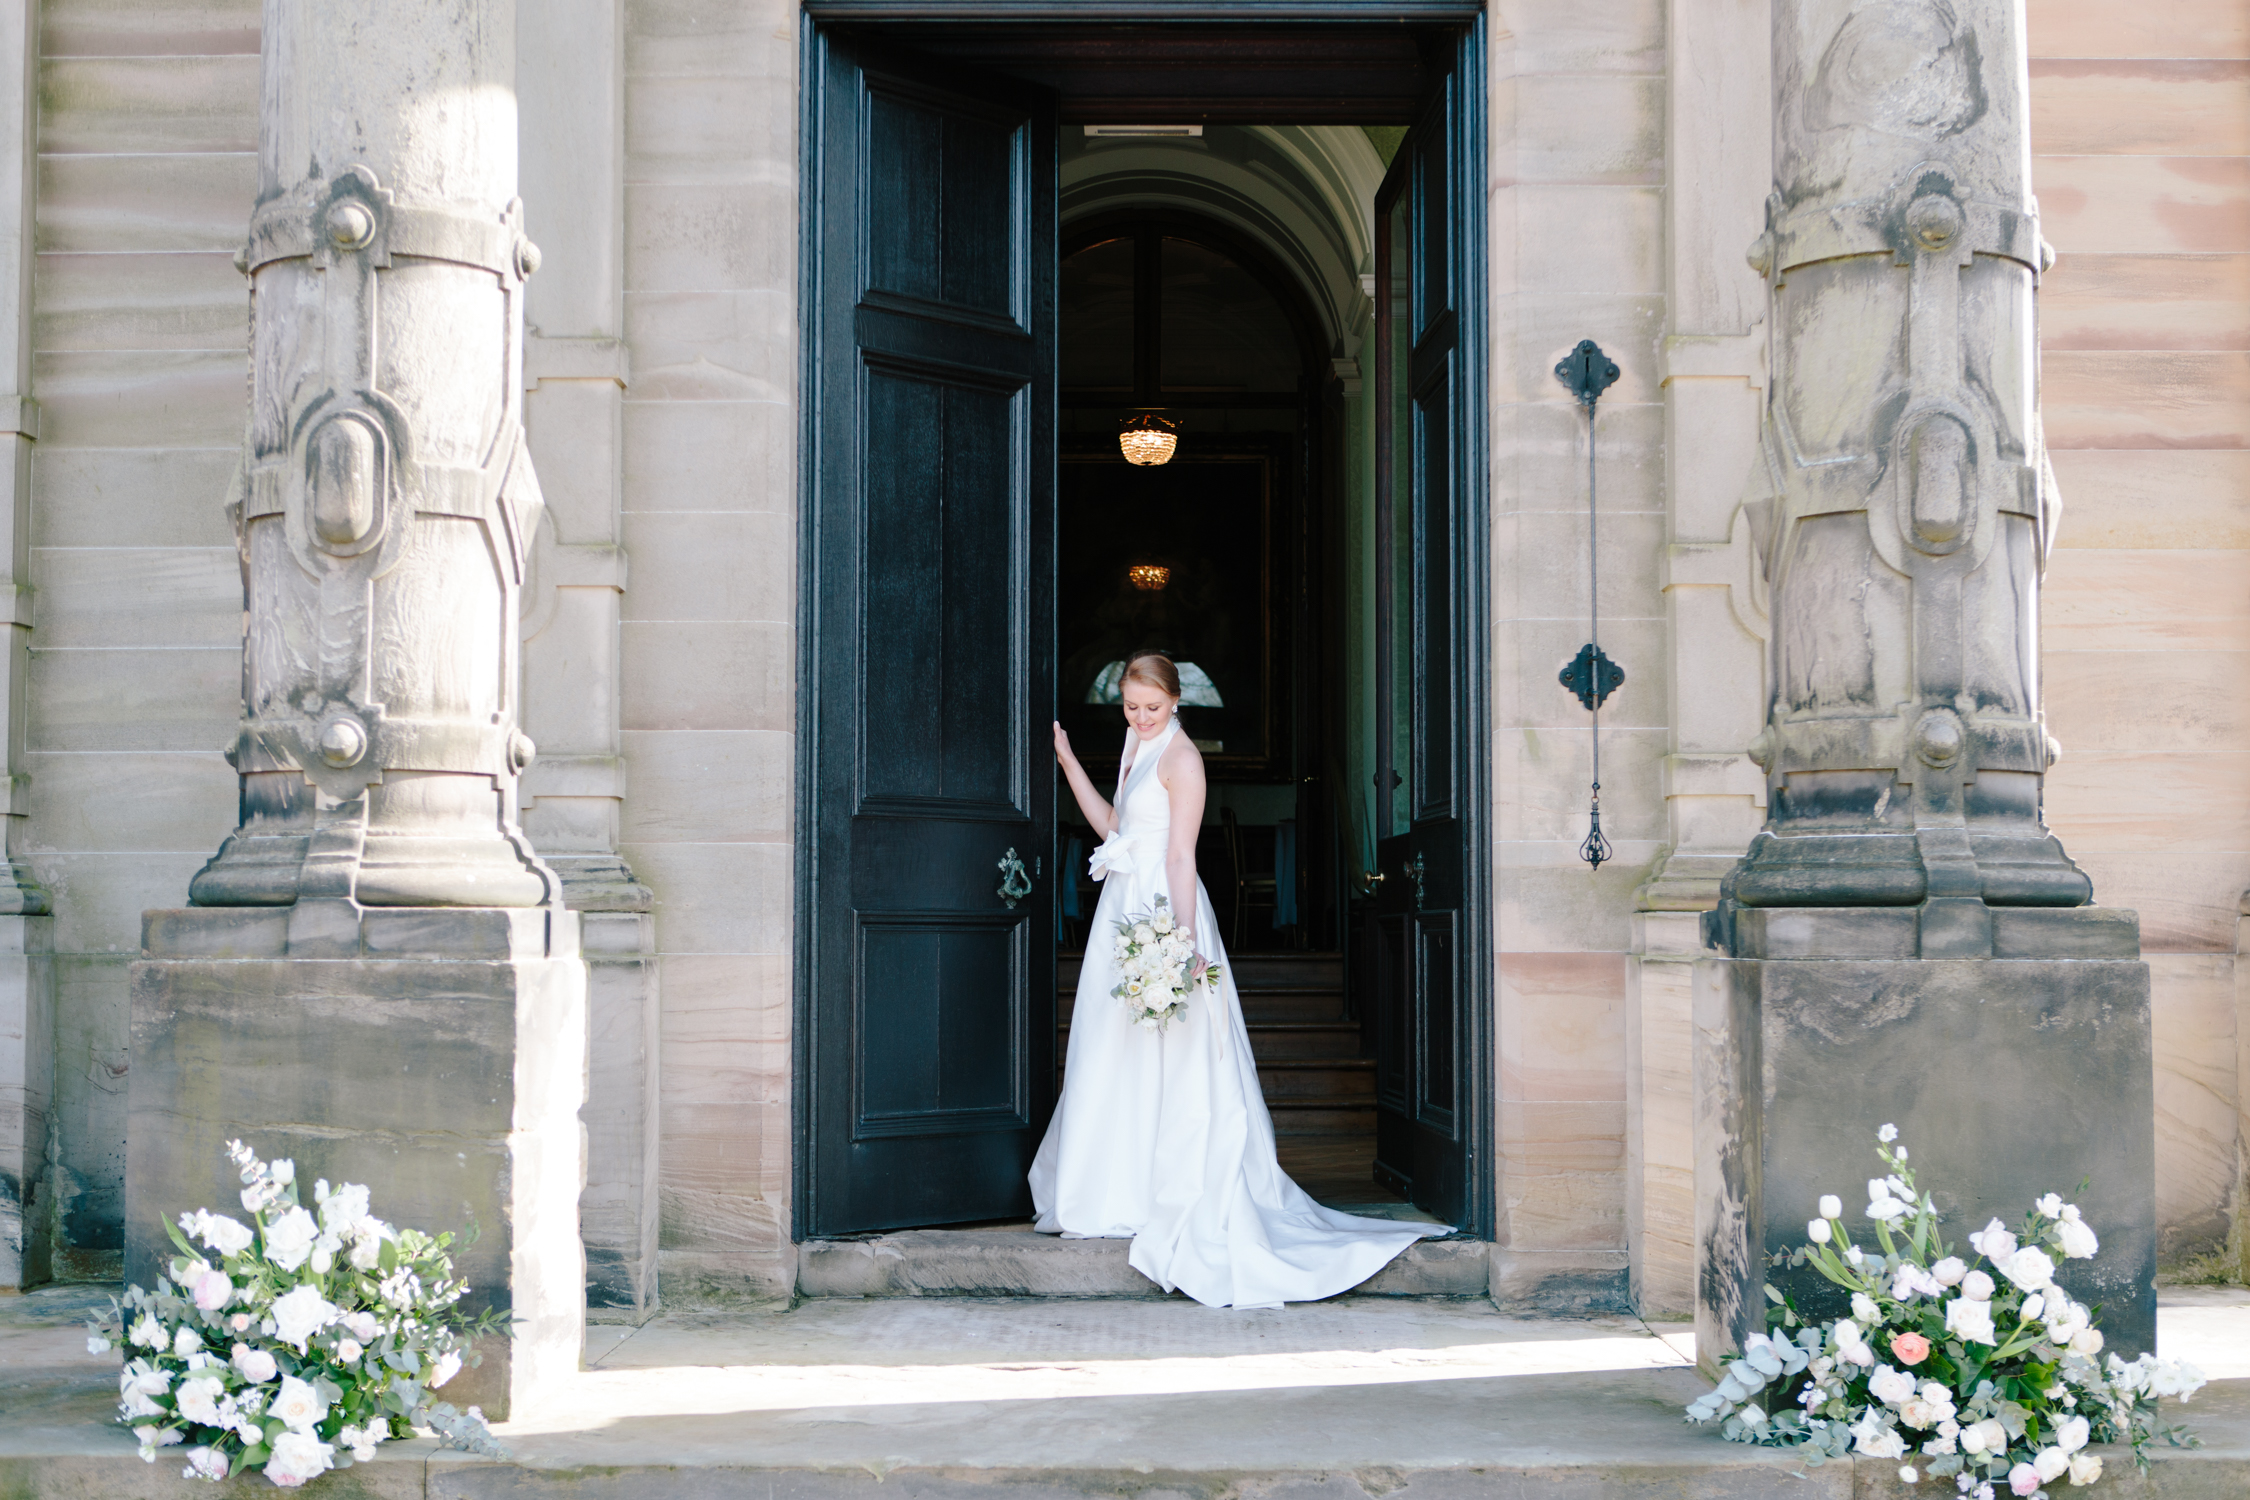 Bride at the door of Sandon Hall, wedding venue in Staffordshire for this bridal inspiration shoot featuring a Jesus Peiro wedding gown. Photography by Jade Osborne Fine art wedding photographer.